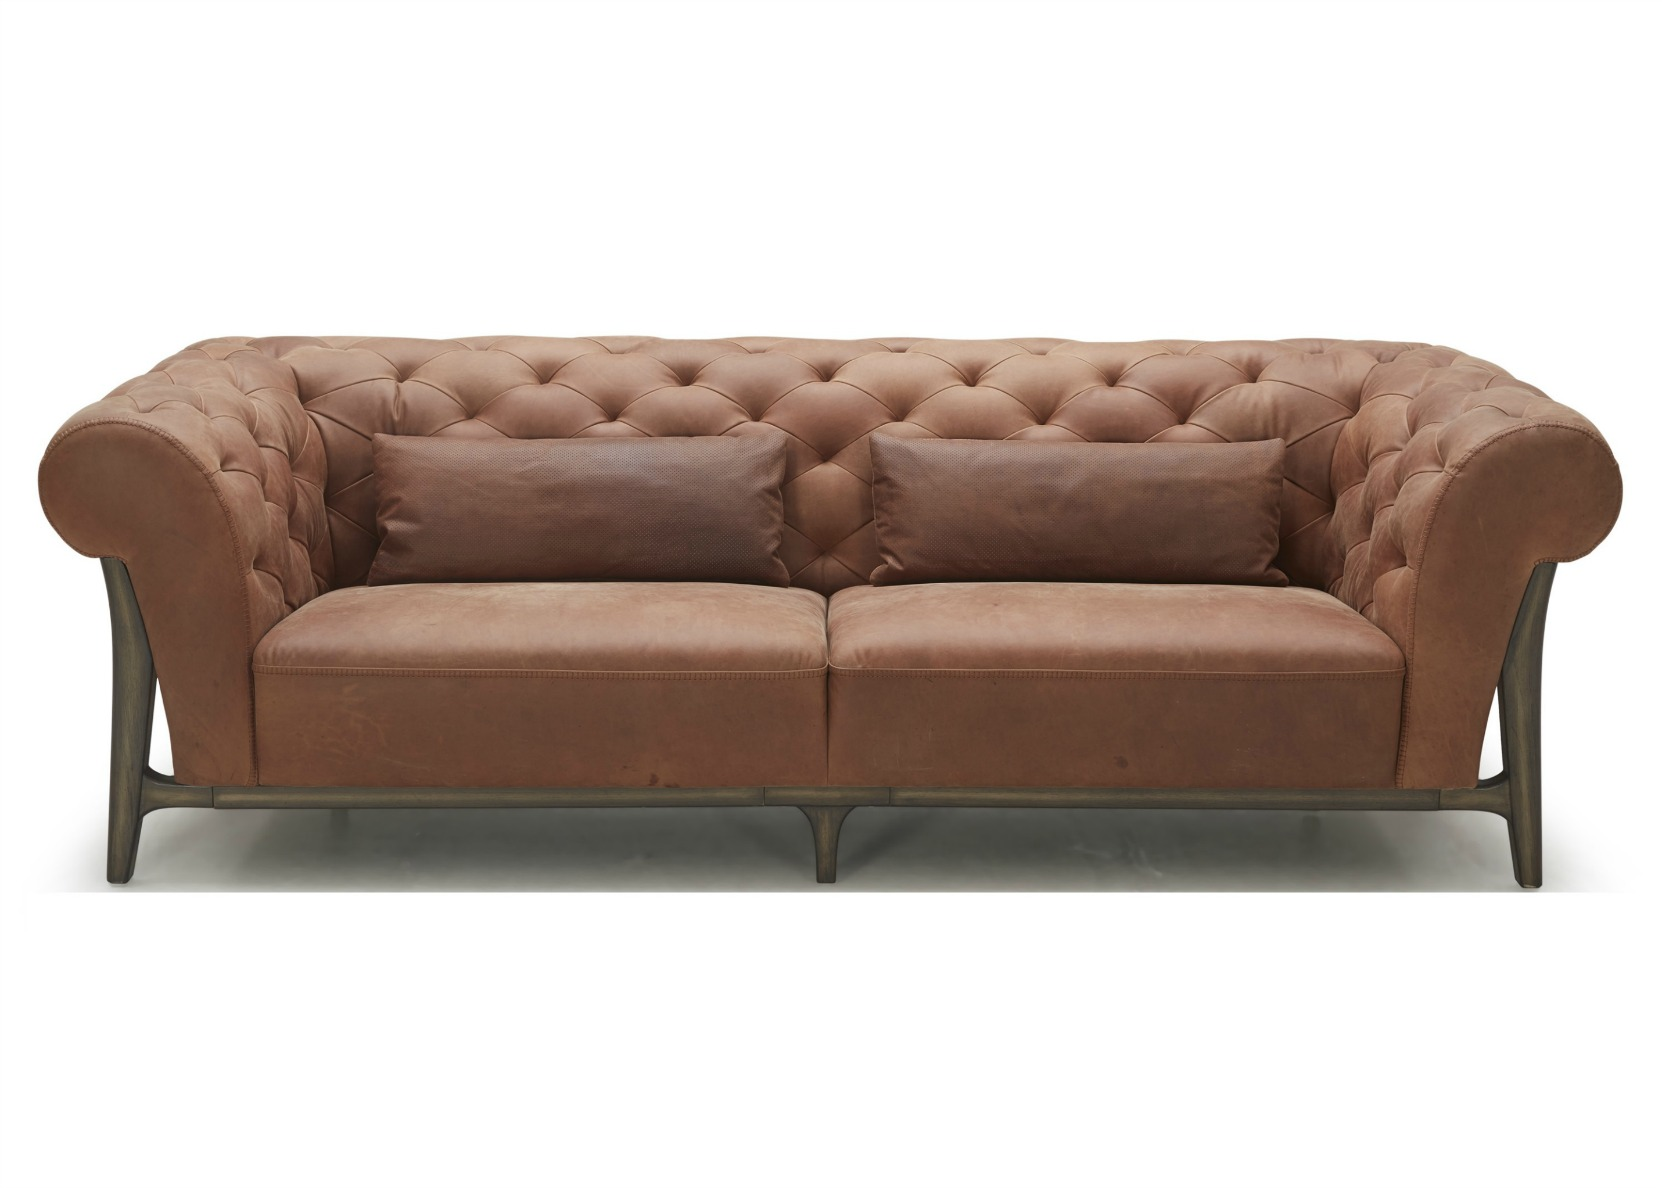 Chesterfield Sofa In Leather Wood Not Just Brown